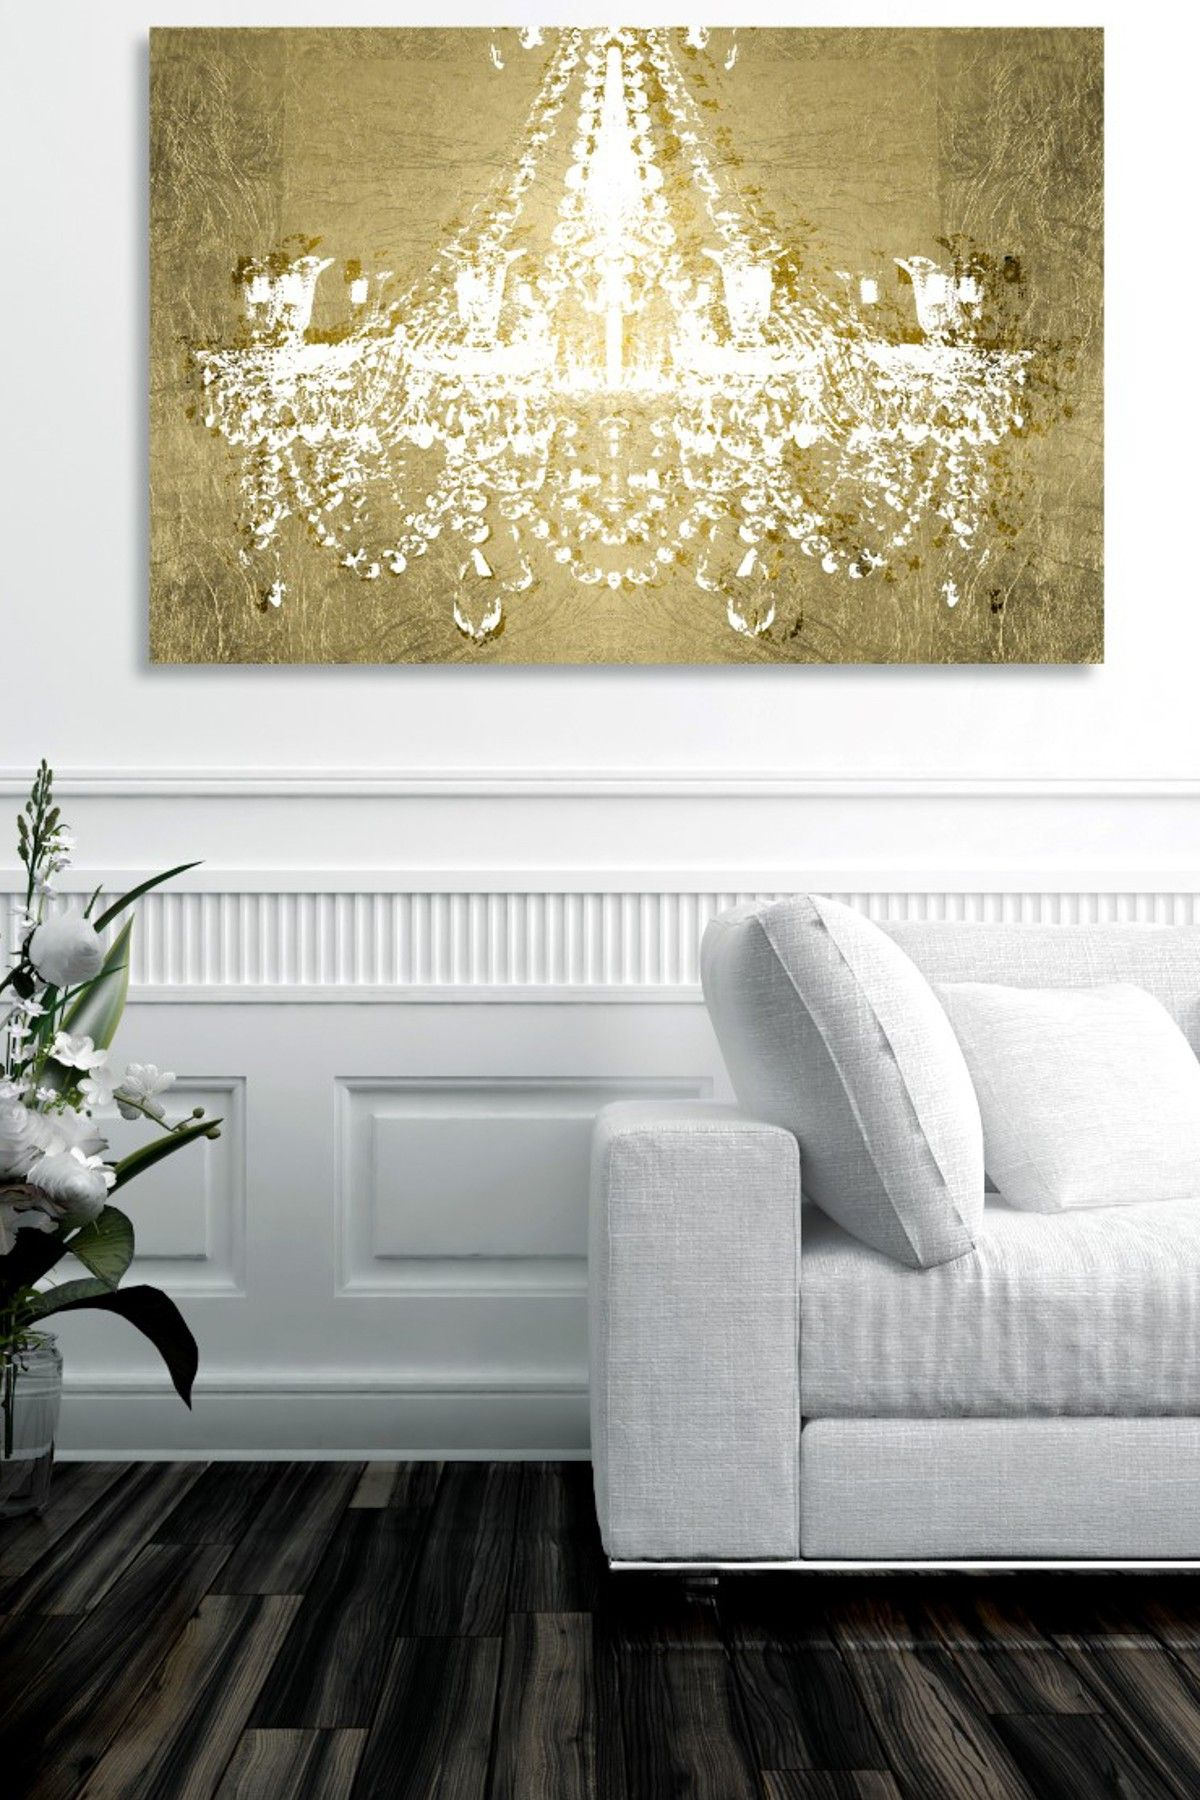 Oliver gal gallery dramatic entrance gold canvas art